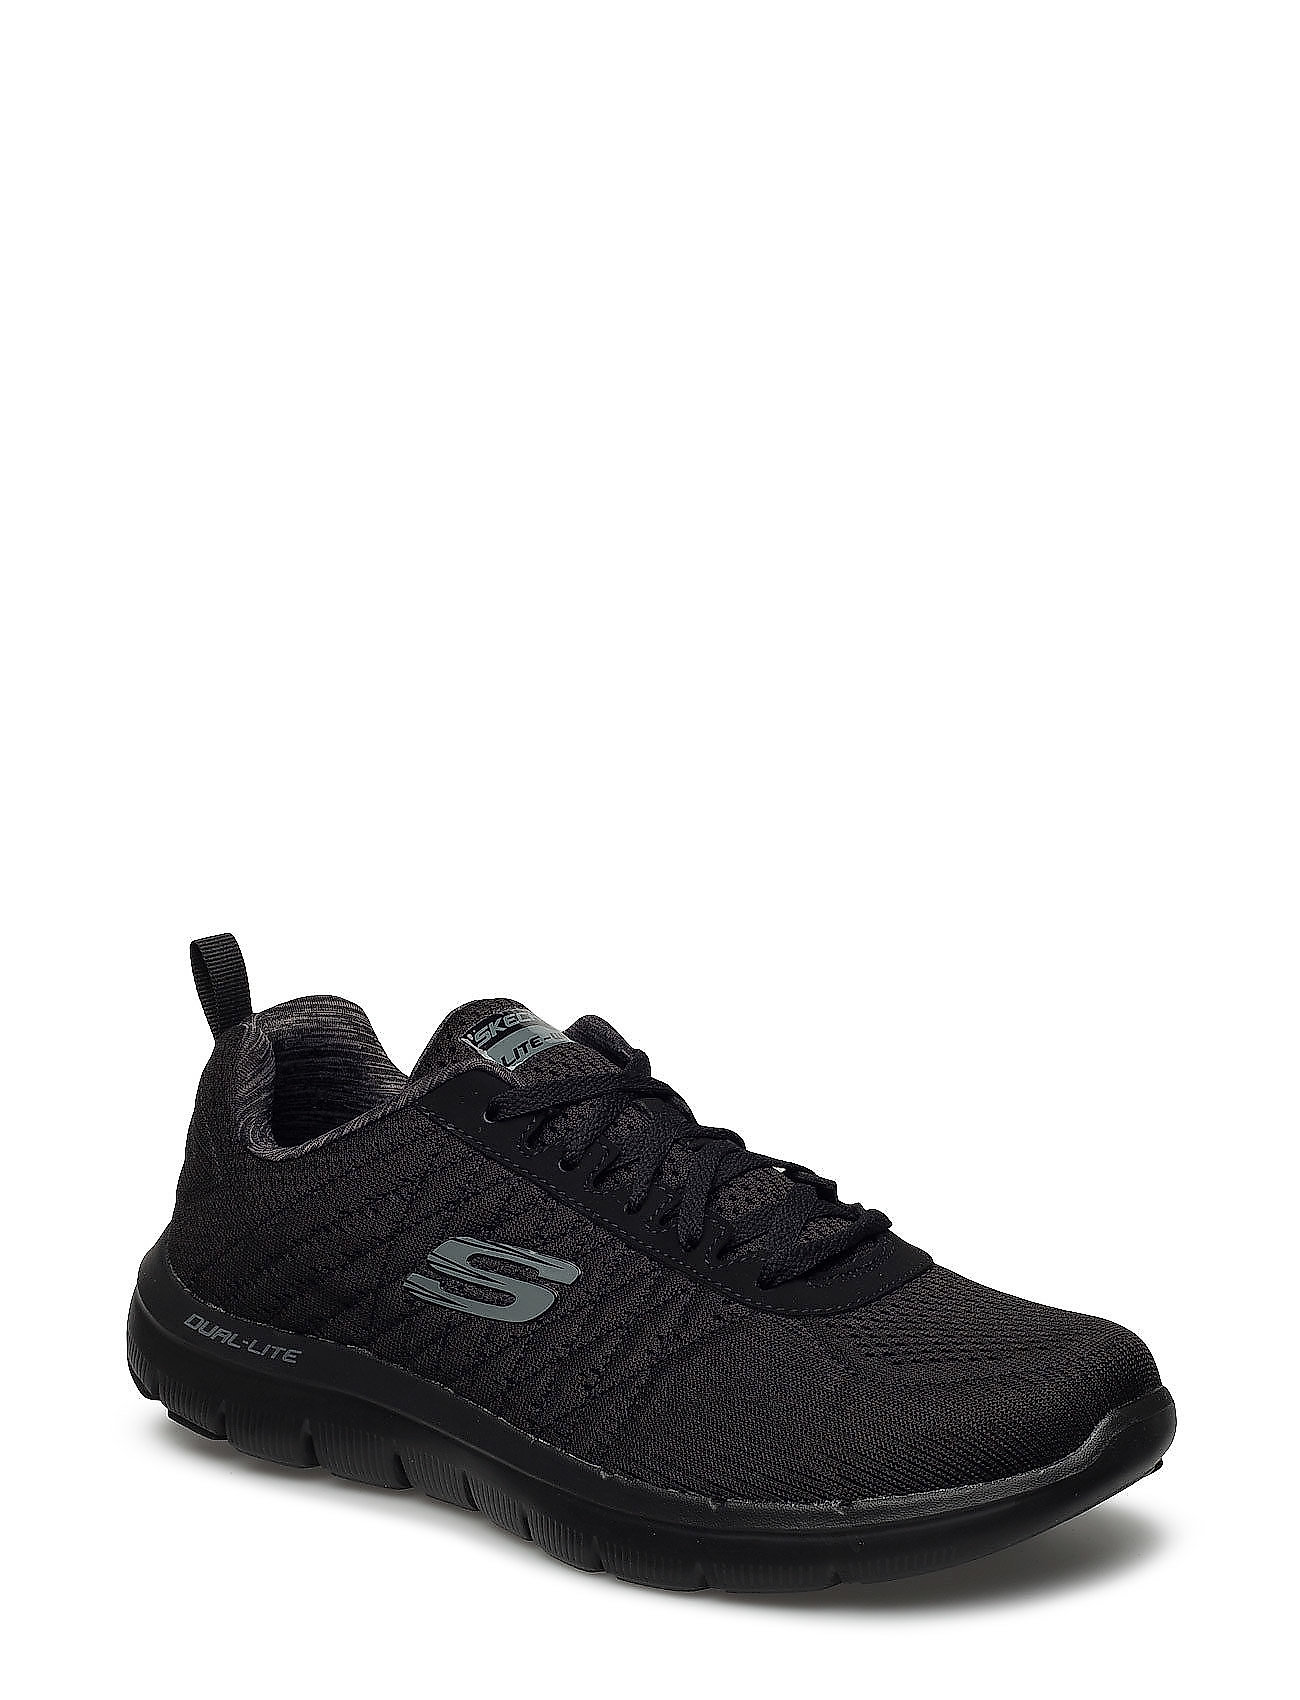 Skechers Mens Flex Advantage 2.0 - Chillston Låga Sneakers Blå Skechers